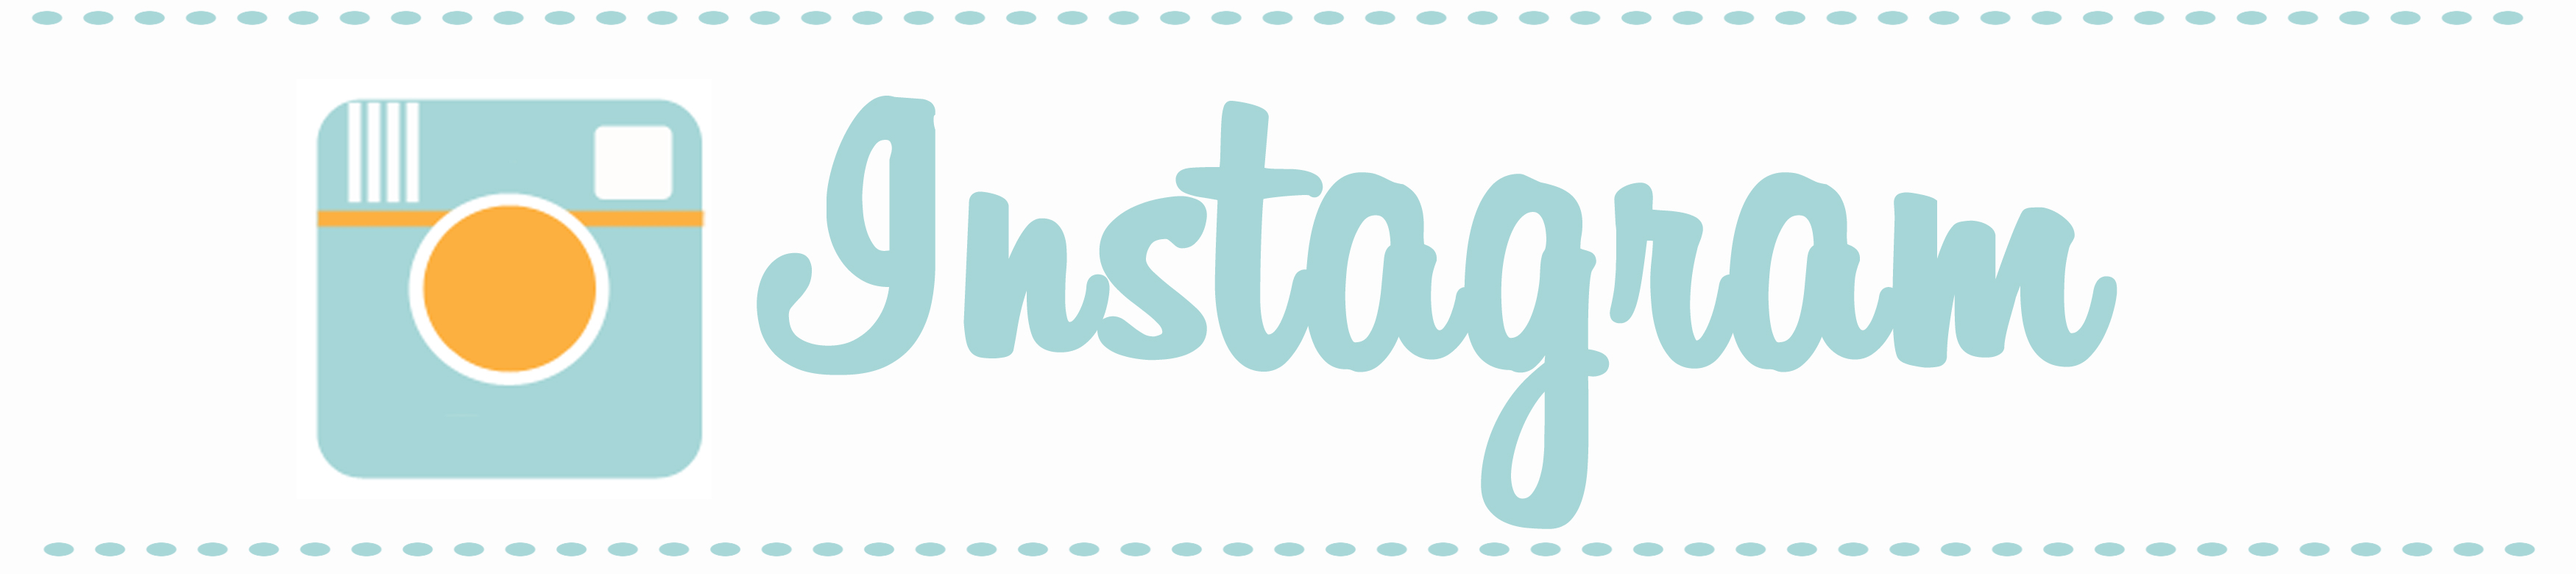 Follow on Instagram